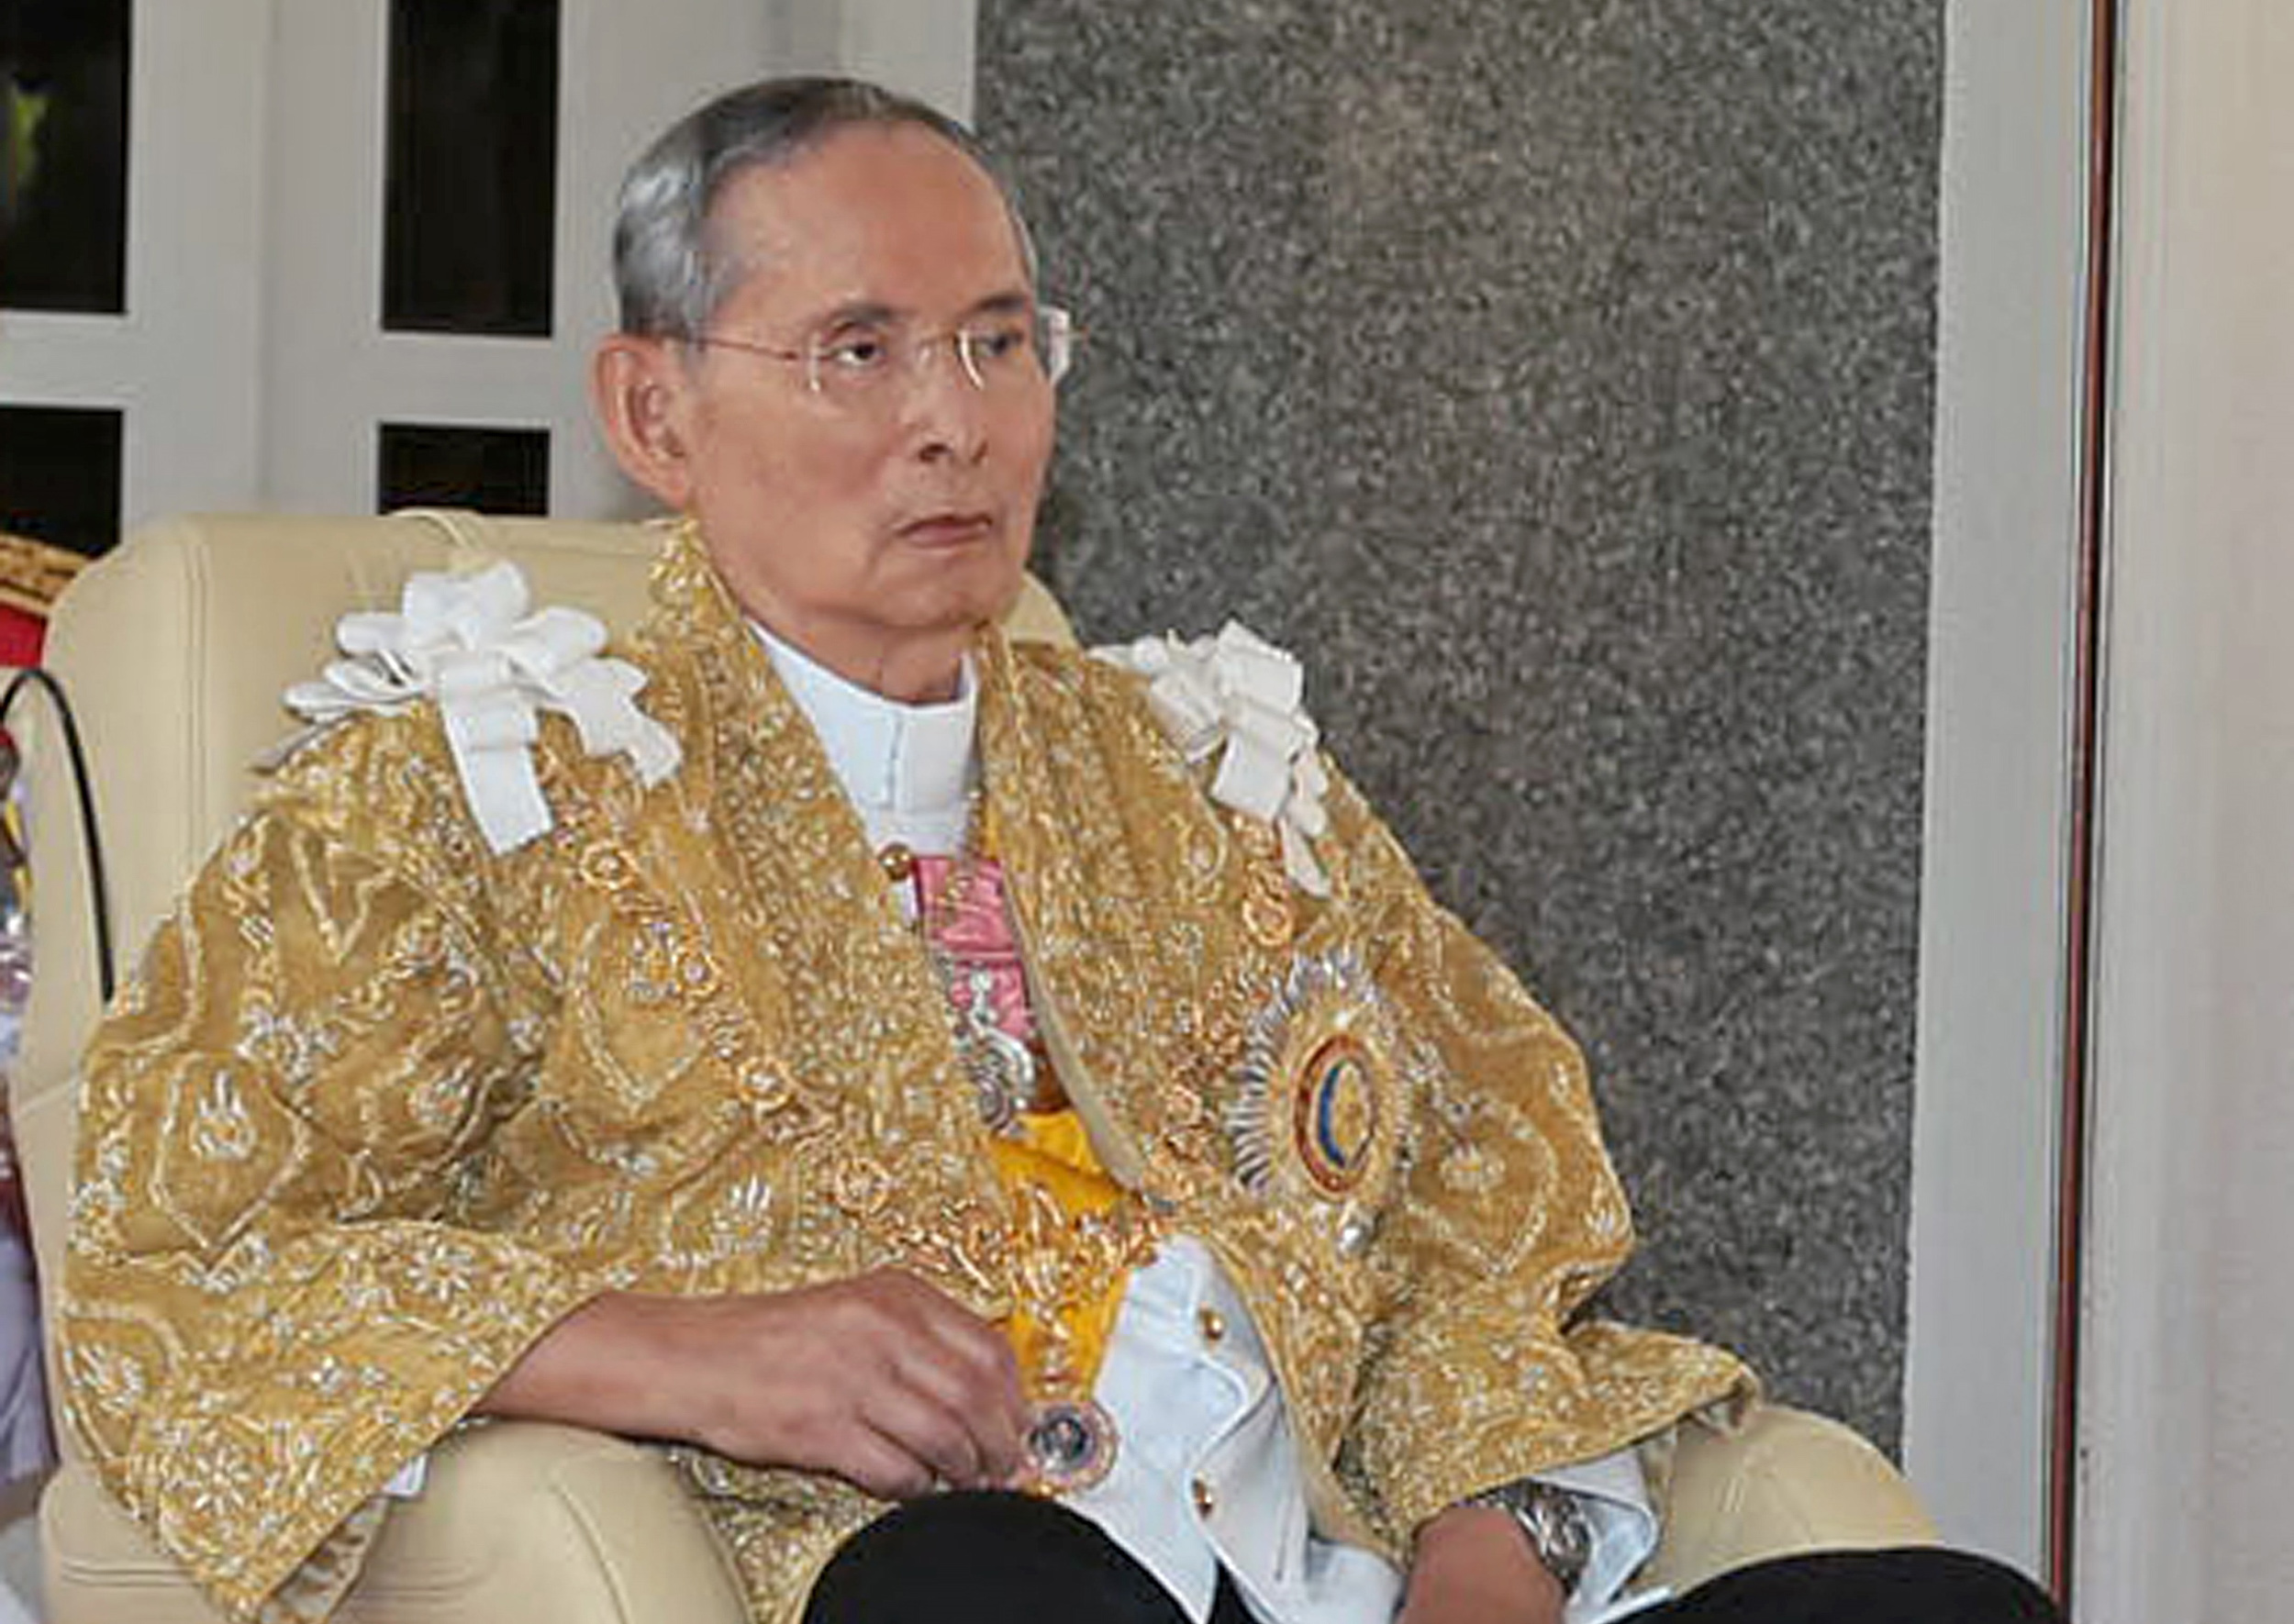 "This handout photo taken on December 5, 2013 by the Thai Royal Bureau shows Thai King Bhumibol Adulyadej sitting in a wheelchair at the Rajapracha Samakhom Pavillion of Klai Kanwon Palace in Hua Hin resort. Thailand's revered King Bhumibol Adulyadej urged the nation to work together for ""stability"" in a speech on his 86th birthday, marked by an easing of tensions after violent anti-government protests. AFP PHOTO / Thai Royal Bureau   -----EDITORS NOTE---- RESTRICTED TO EDITORIAL USE - MANDATORY CREDIT ""AFP PHOTO / Thai Royal Bureau"" - NO MARKETING NO ADVERTISING CAMPAIGNS - DISTRIBUTED AS A SERVICE TO CLIENTS / AFP PHOTO / Thai Royal Bureau / Thai Royal Bureau"